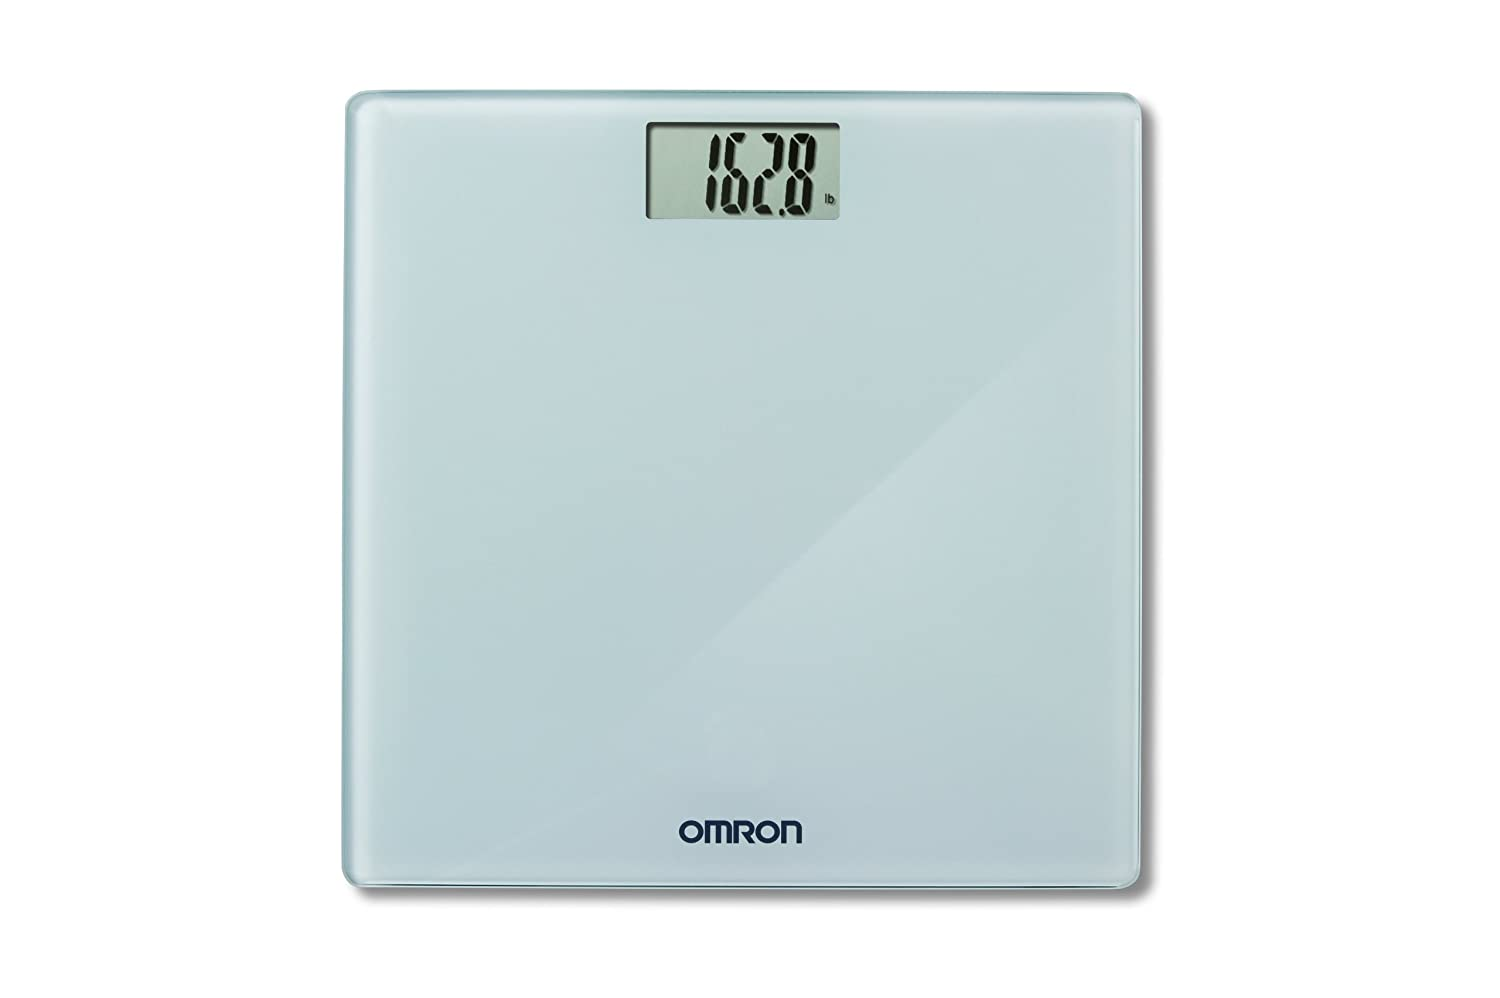 Omron SC-100 Digital Glass Bathroom Scale